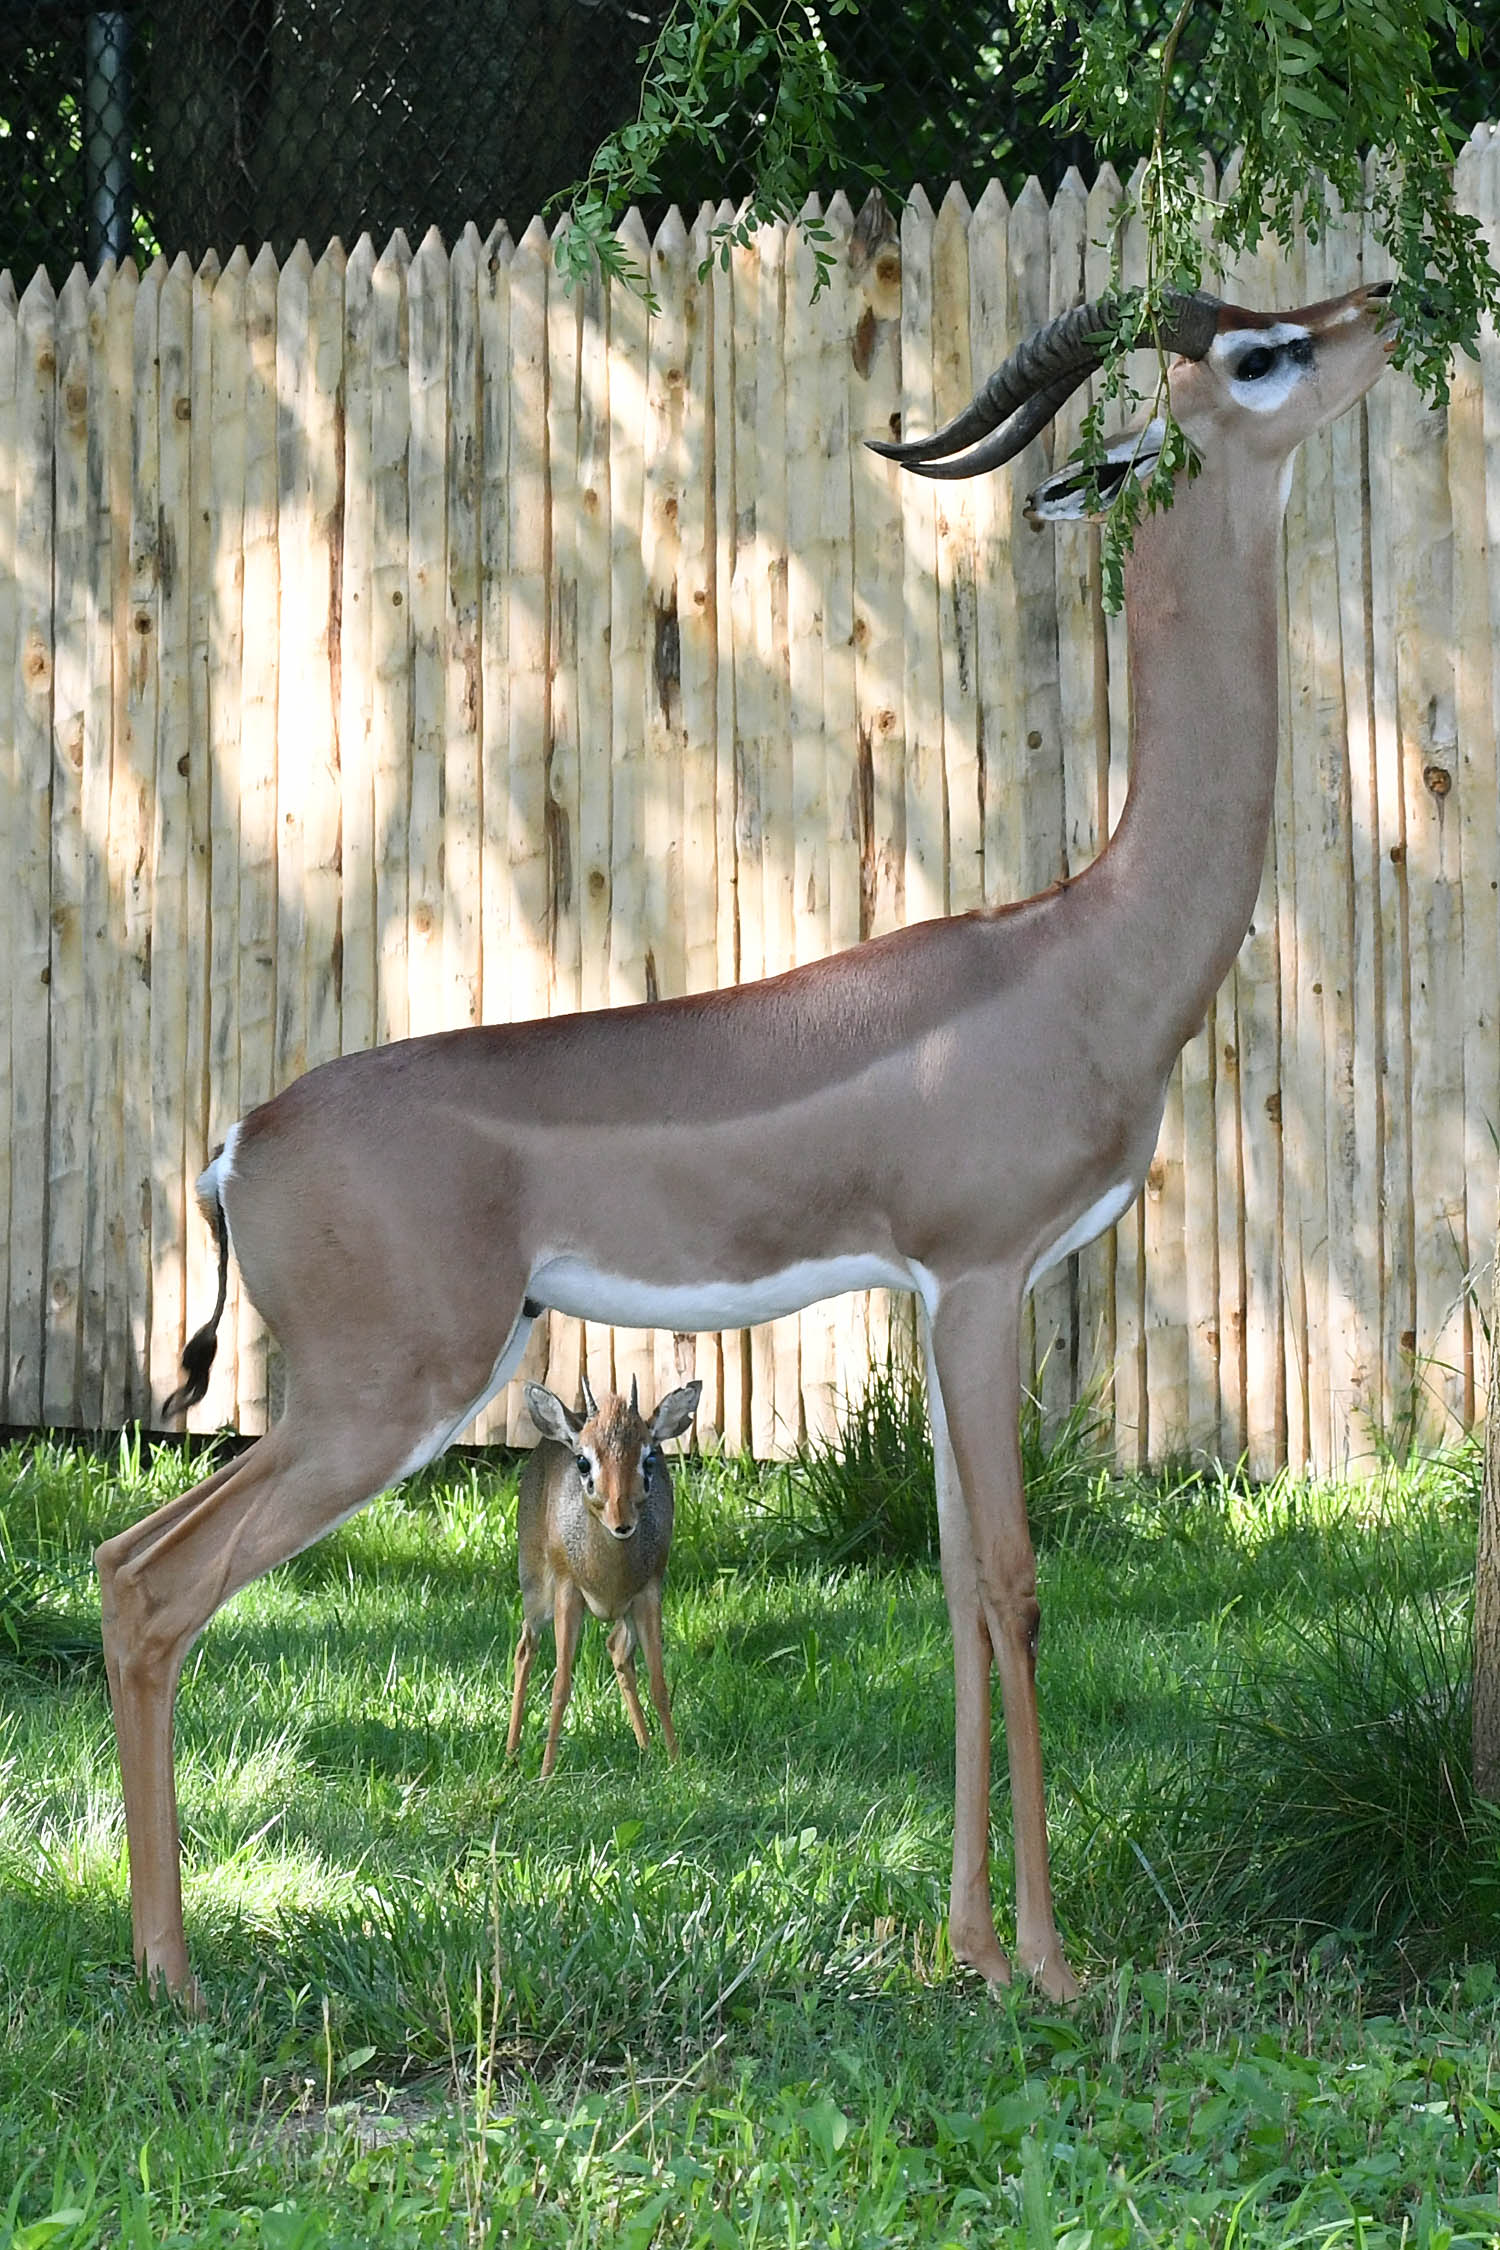 Brookfield Zoo has two small antelope species on display. The Gerenuk uses its long neck to reach vegetation other animals can't reach. Meanwhile the tiny DikDik relies on finding food closer to the ground (Photo Courtesy of Brookfield Zoo)